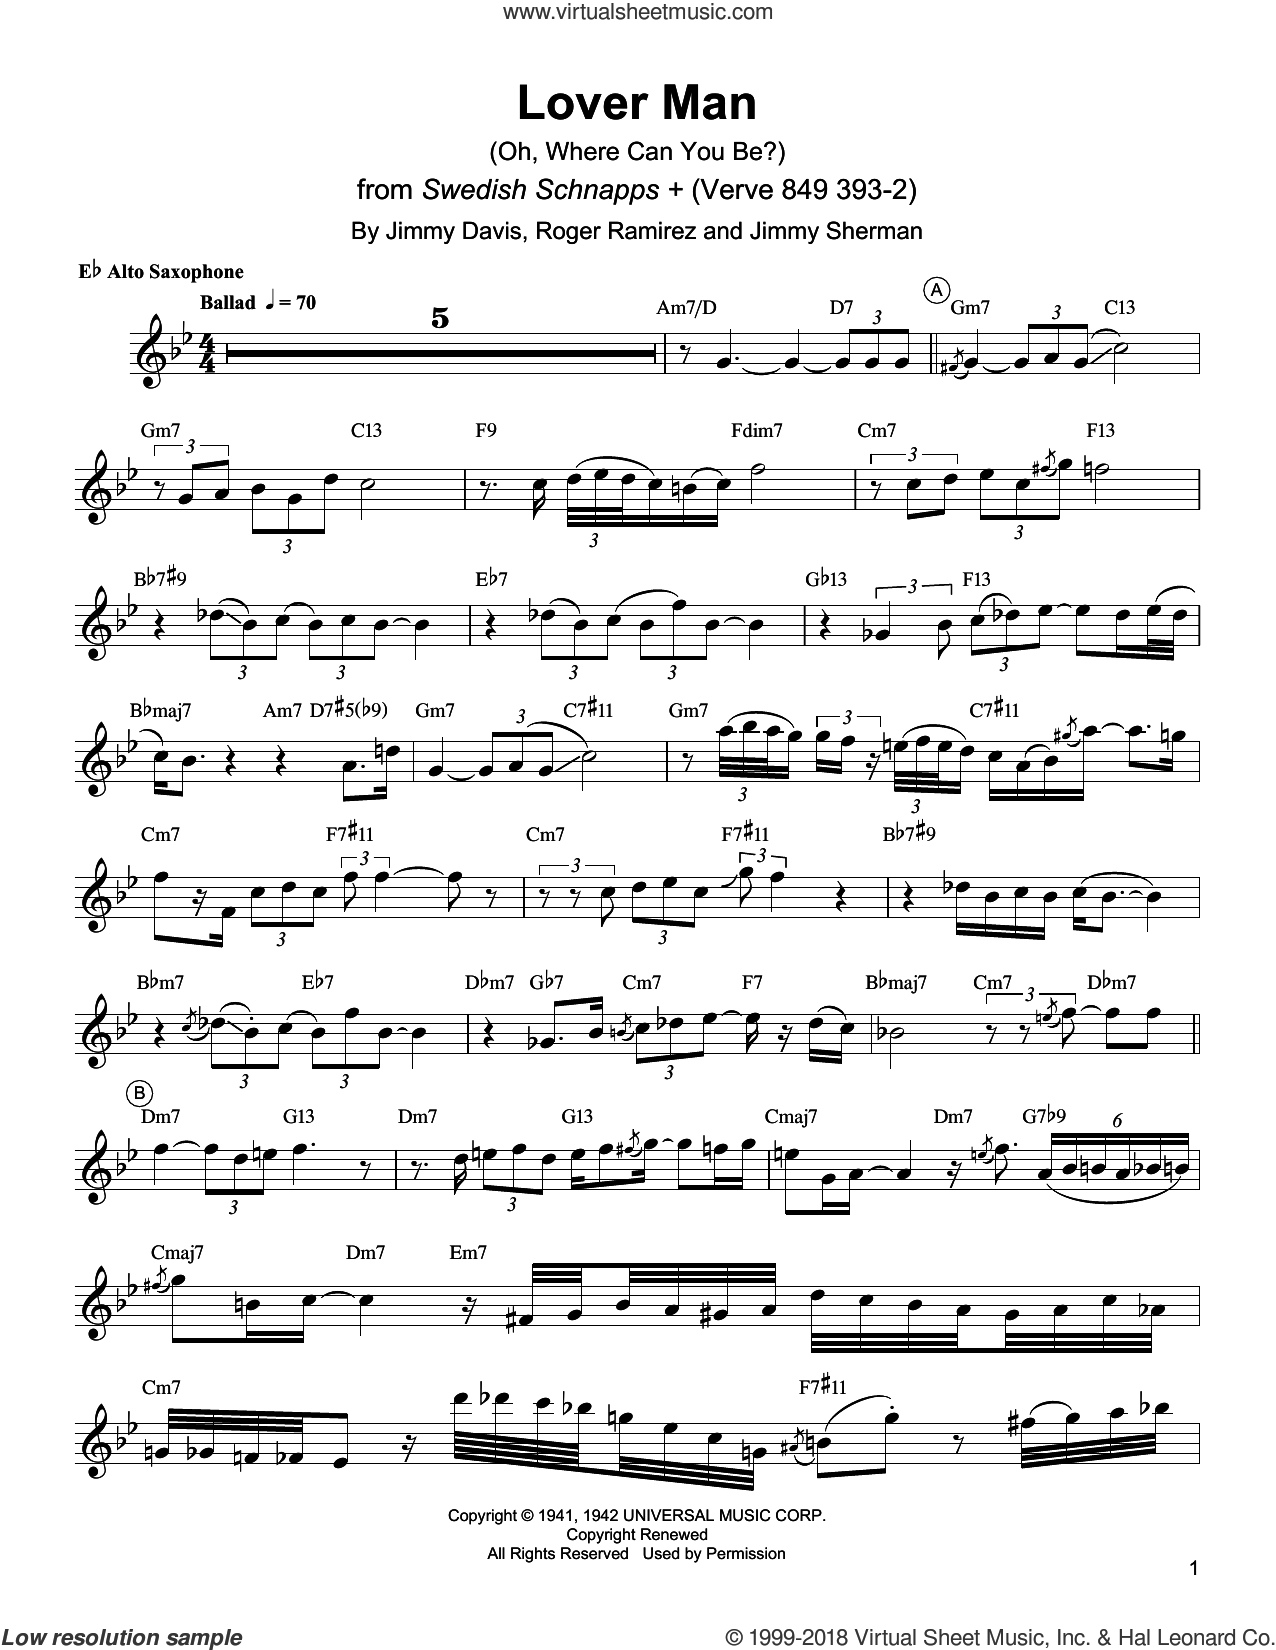 Lover Man (Oh, Where Can You Be?) sheet music for alto saxophone (transcription) by Charlie Parker, Jimmie Davis, Jimmy Sherman and Roger Ramirez, intermediate skill level